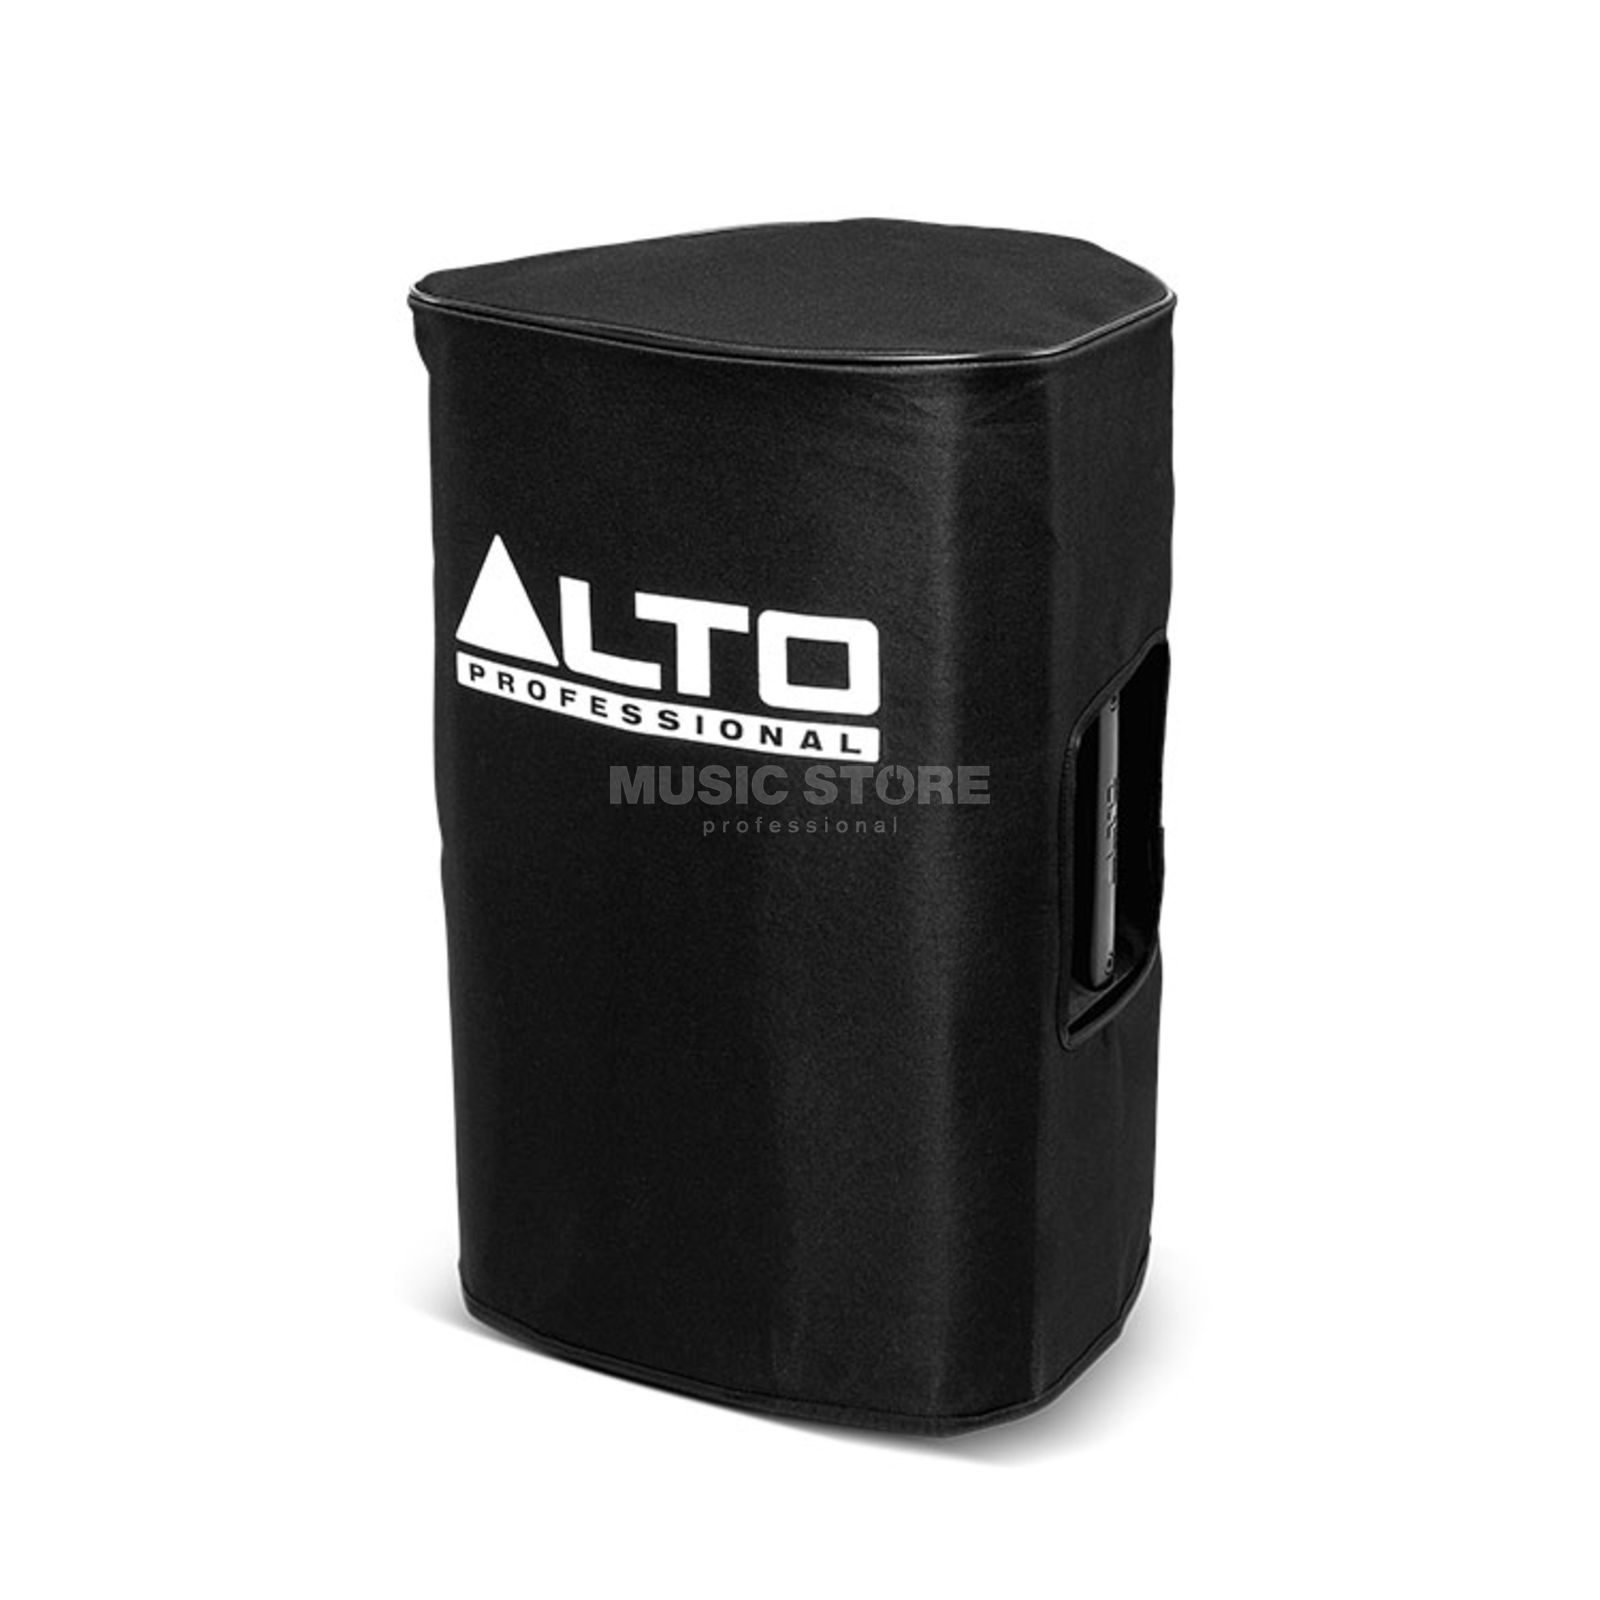 ALTO Cover TS 210 Product Image